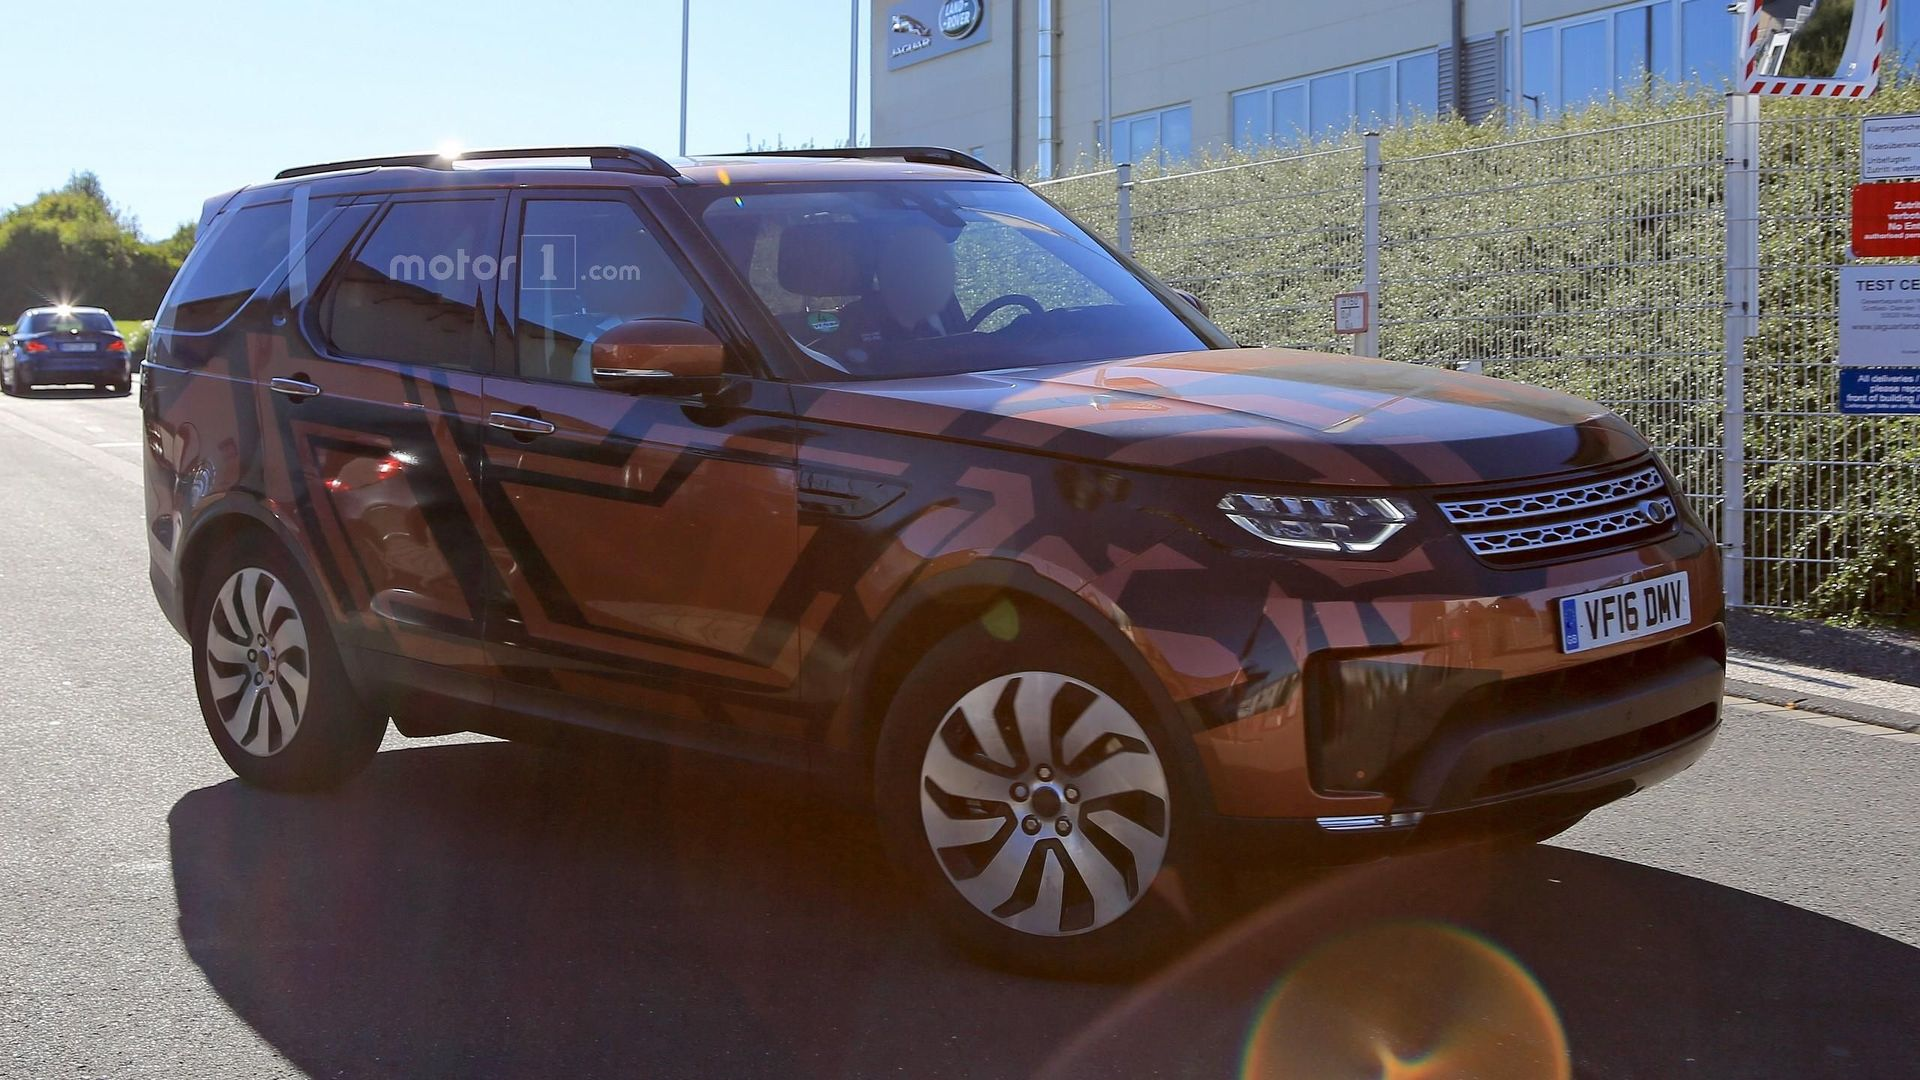 Best look yet at the 2017 Land Rover Discovery